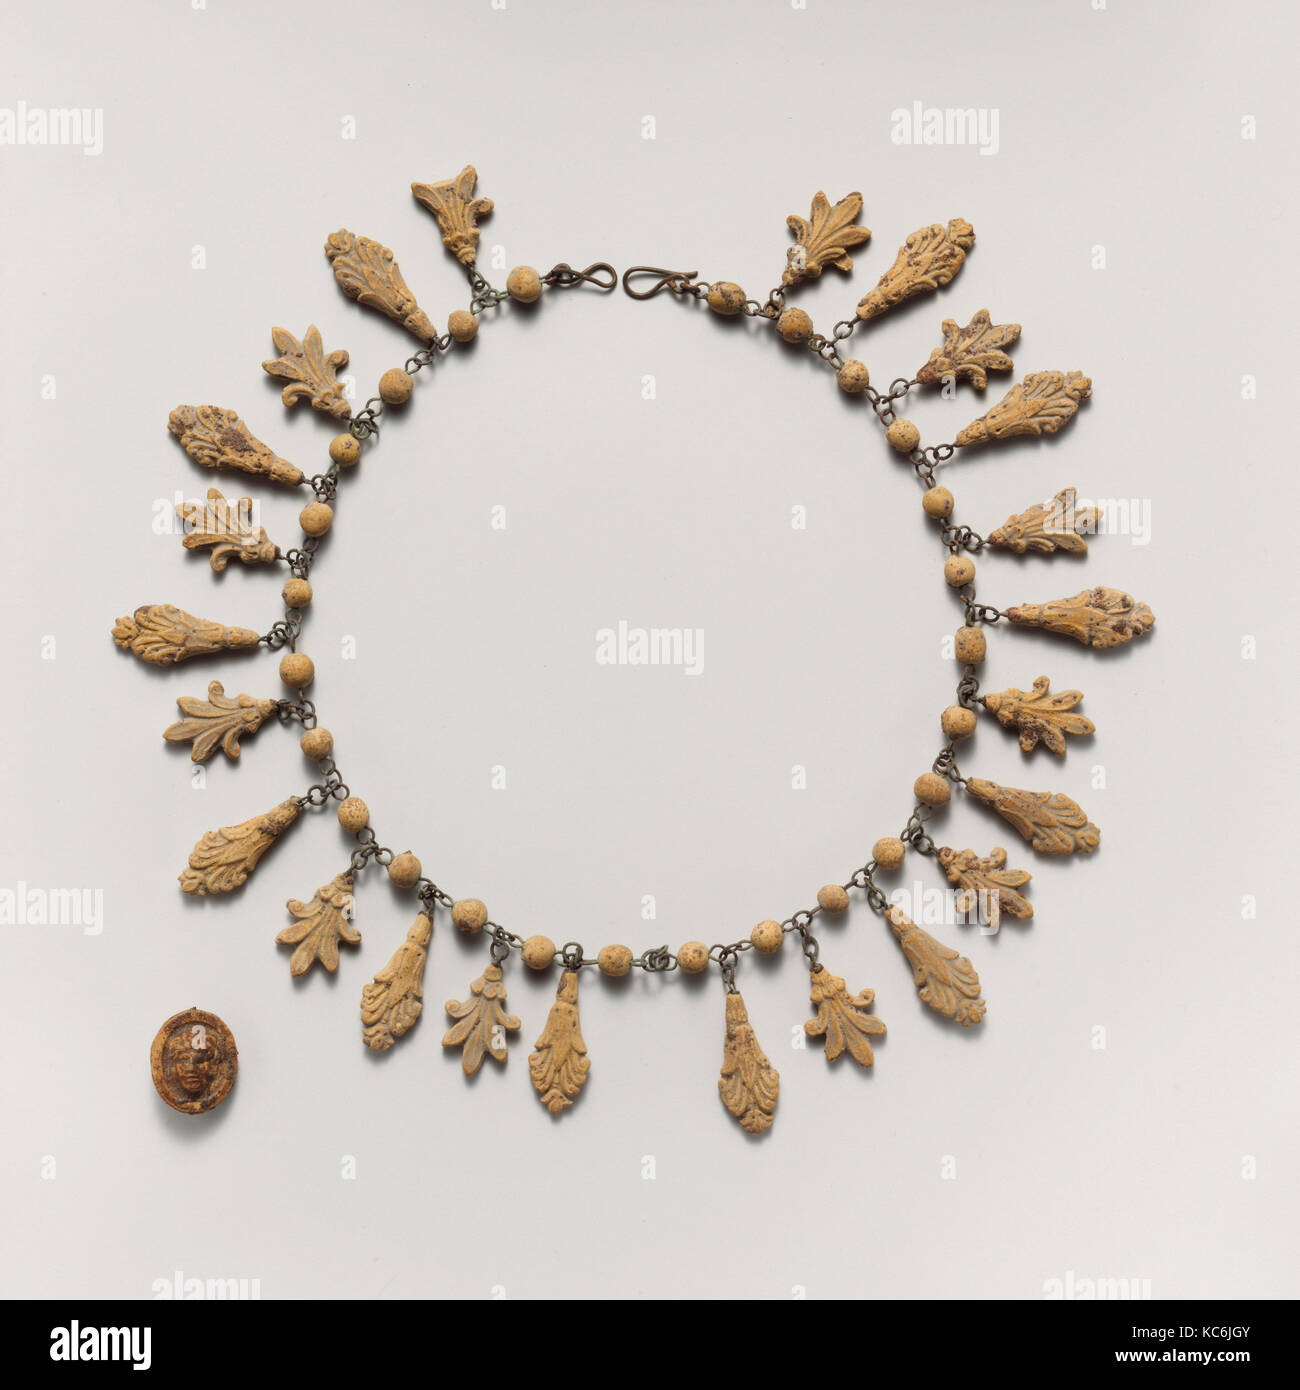 Terracotta necklace with palmette and lotus pendants 3rd century terracotta necklace with palmette and lotus pendants 3rd century bc audiocablefo